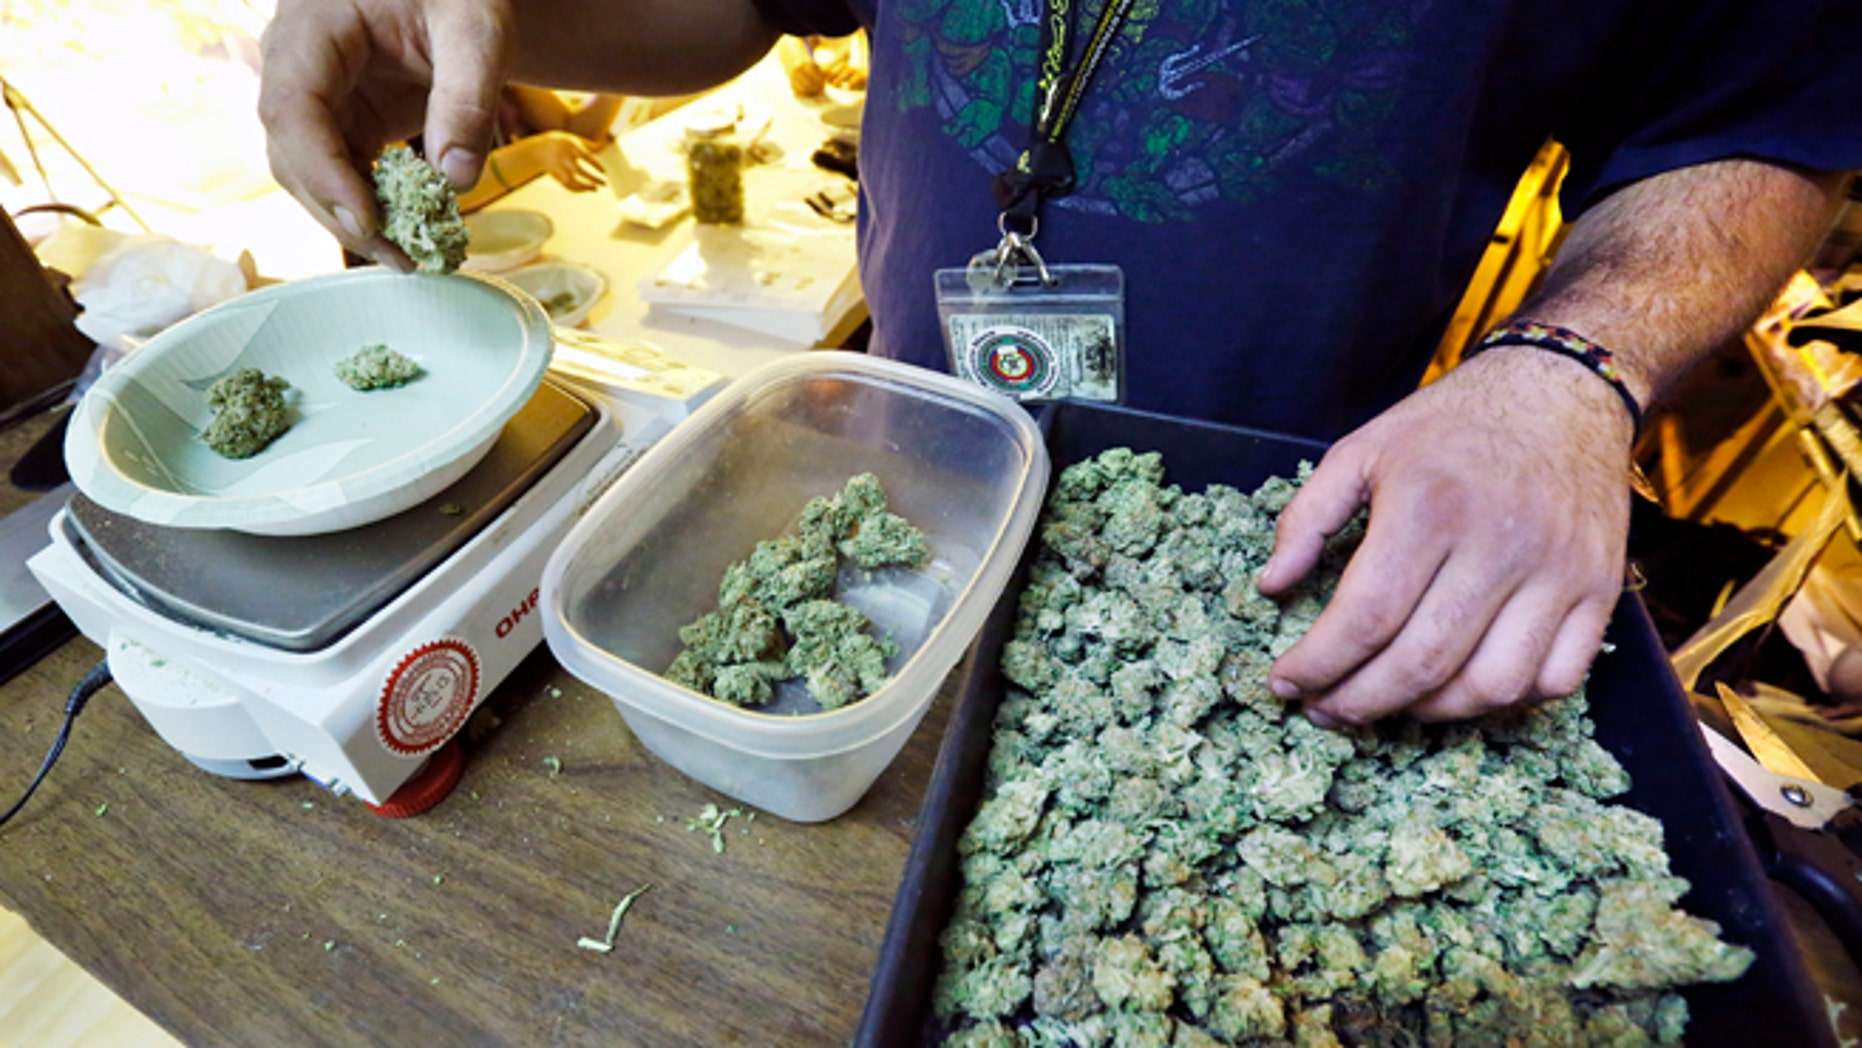 An employee weighs portions of retail marijuana to be packaged and sold at 3D Cannabis Center in Denver.